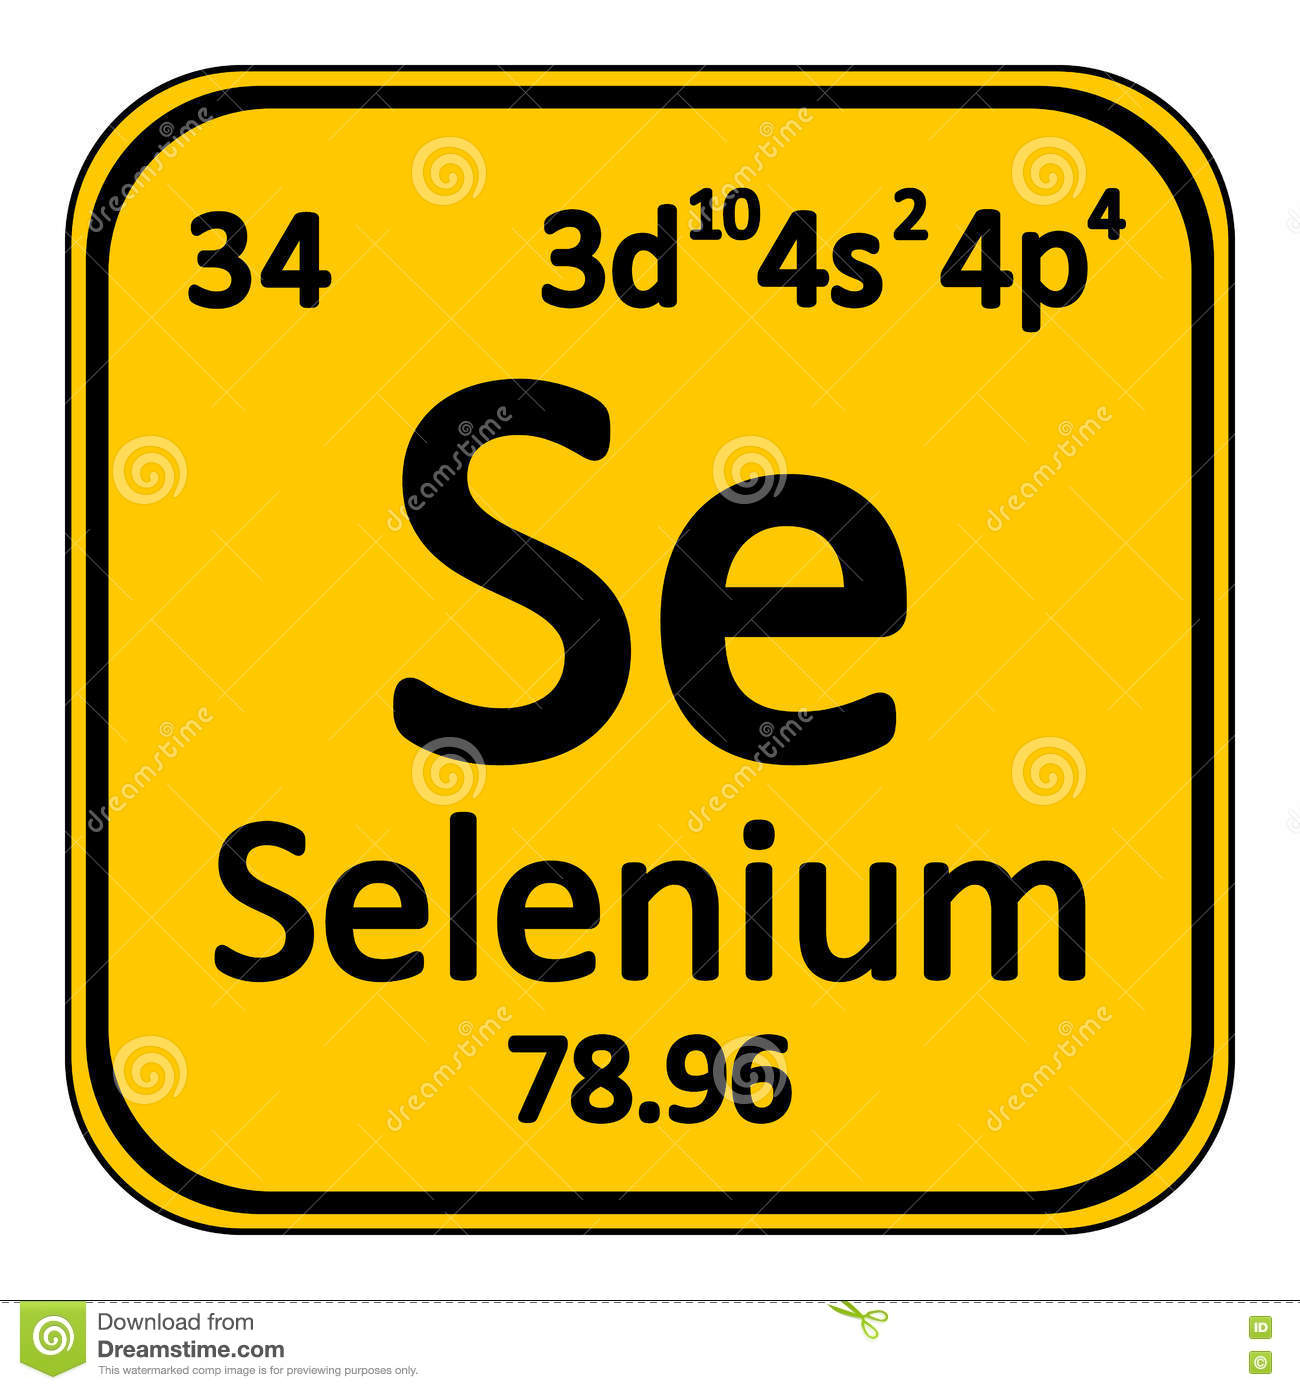 Periodic table selenium images periodic table images periodic table element selenium icon stock illustration image royalty free illustration download periodic table element selenium gamestrikefo Images